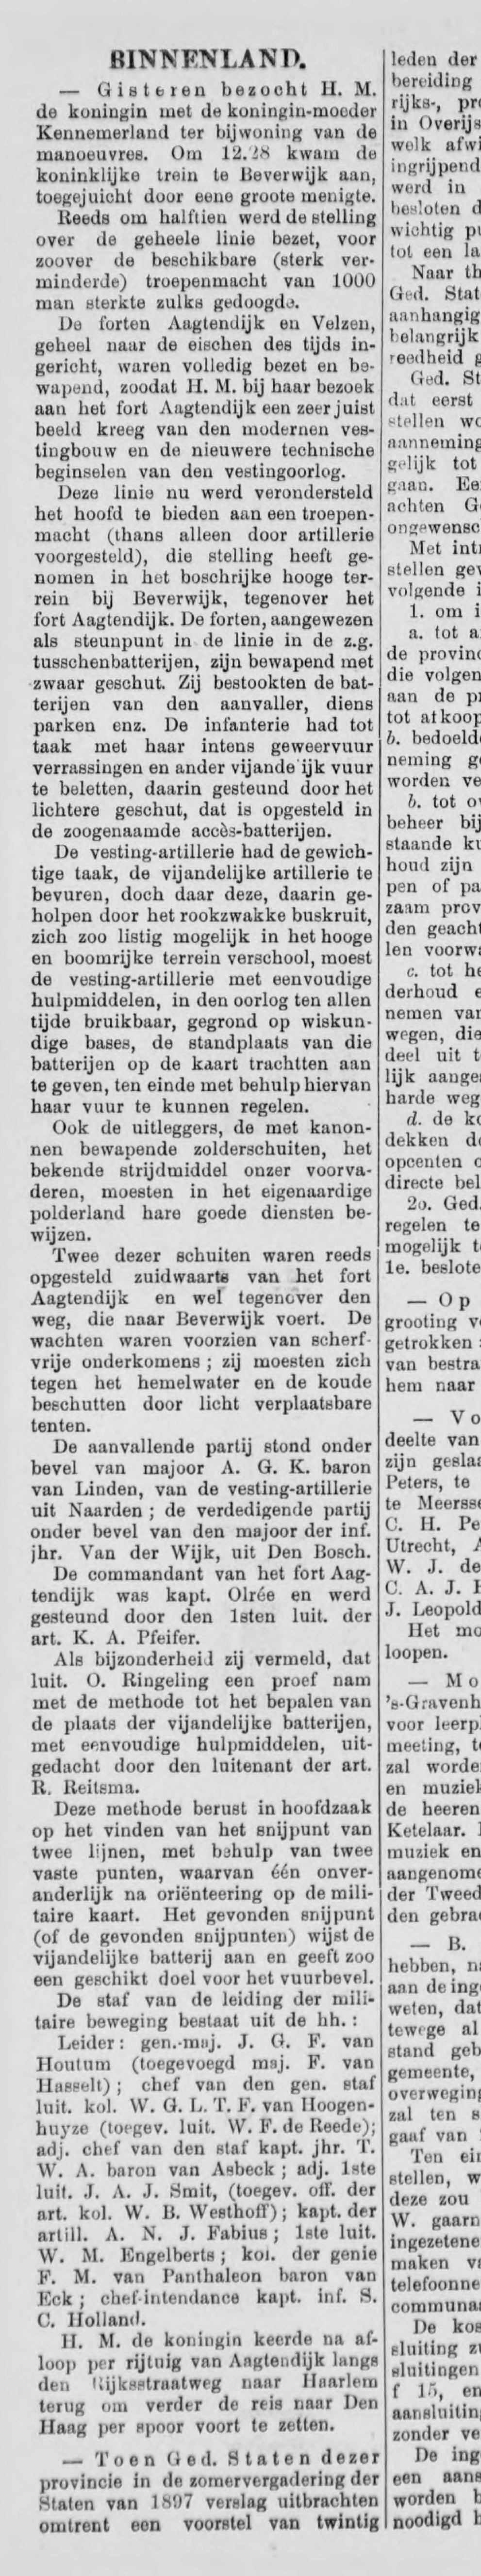 18991002 Deventer Dagblad.jpg